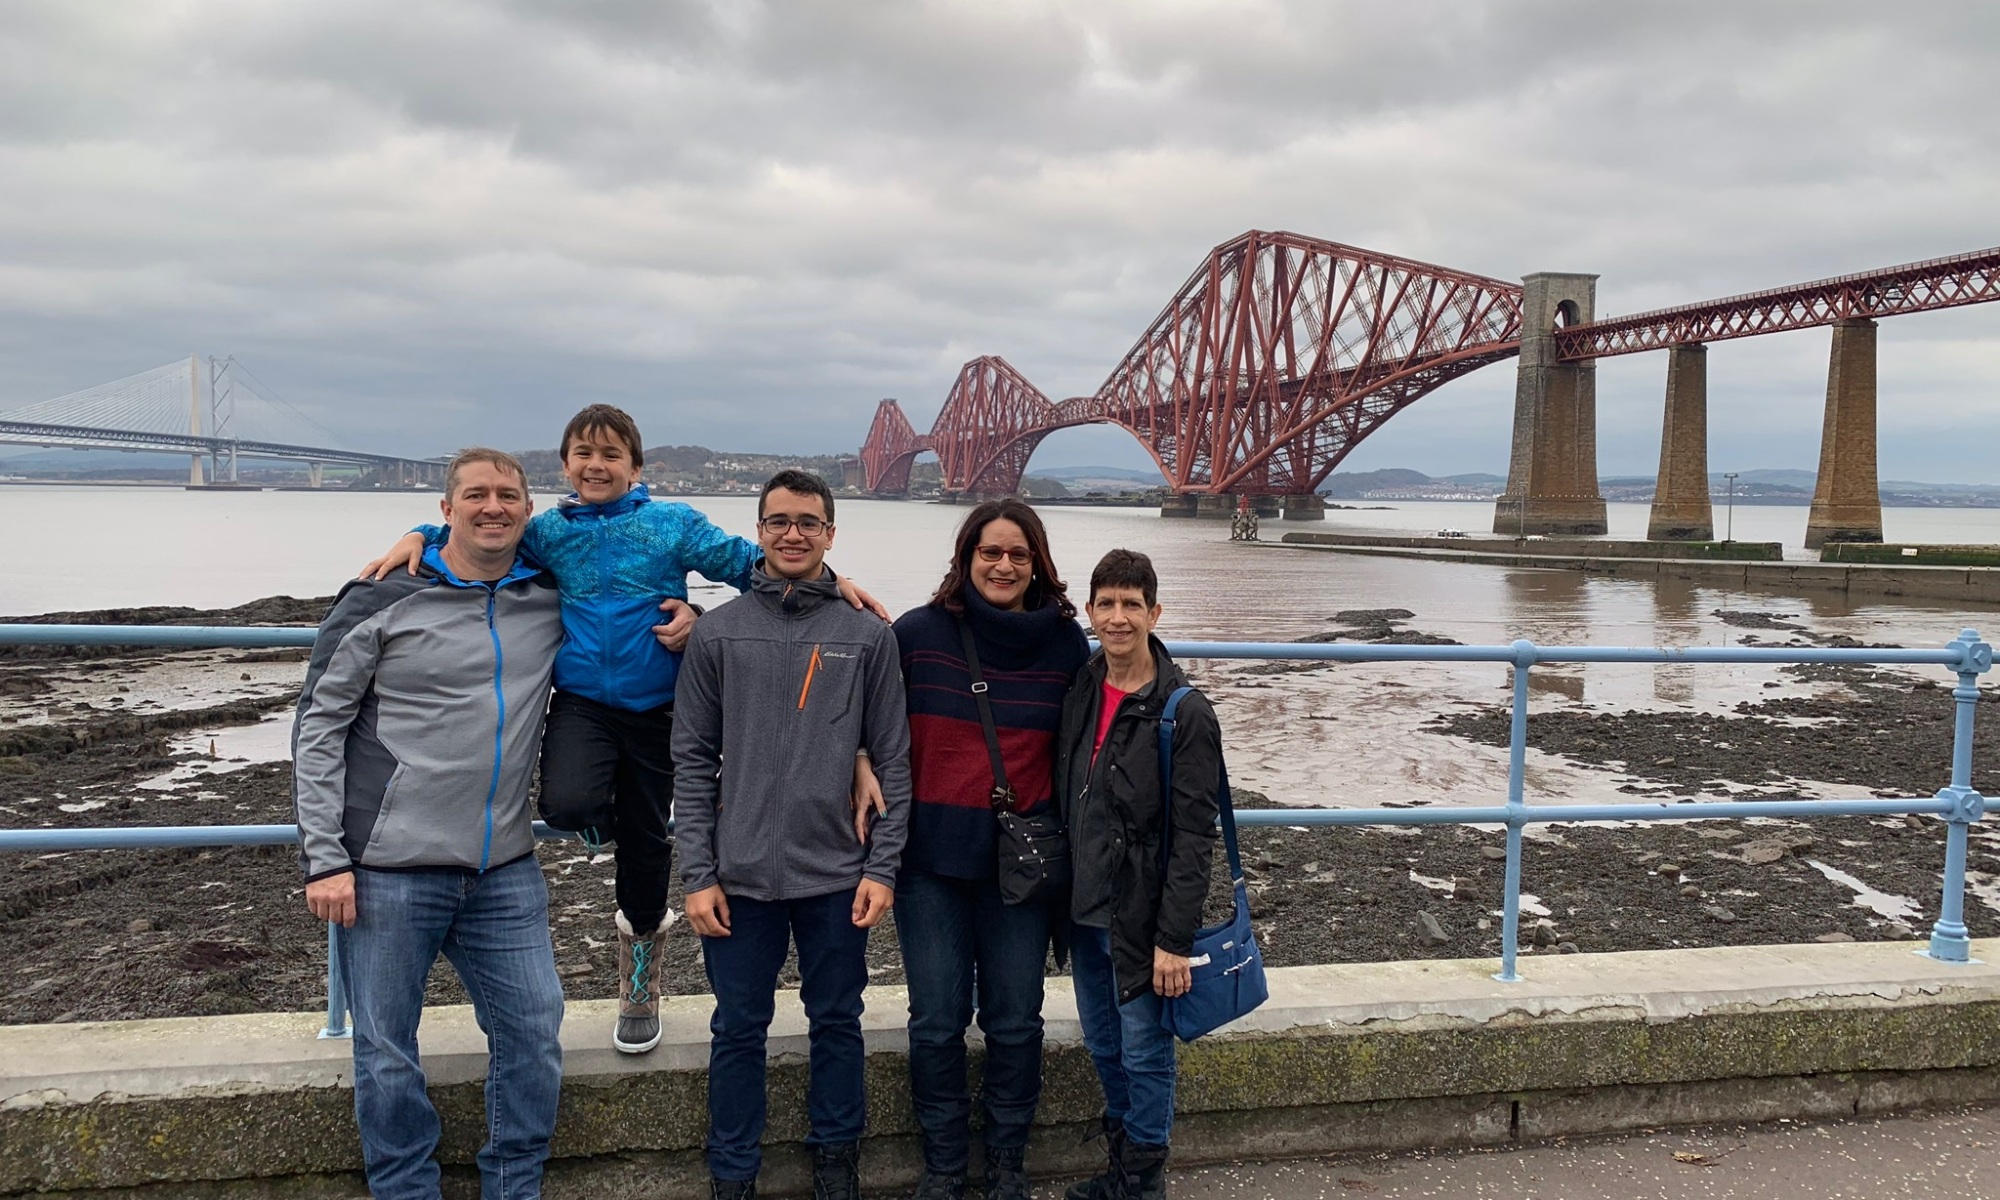 The Forth Bridge completed in 1890